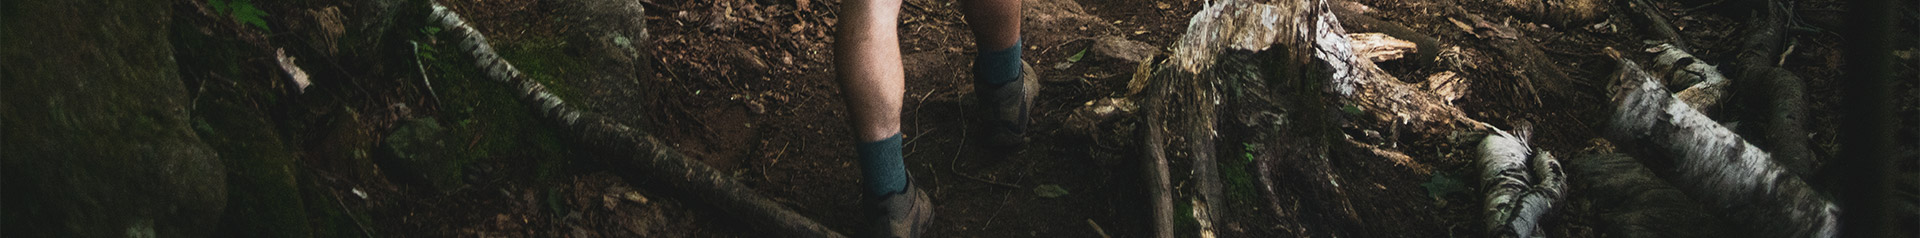 Deep in the forest with fallen birch trees and lots of moss and mushrooms someones foot treds quickly wearing grey hiking boots and tall blue socks